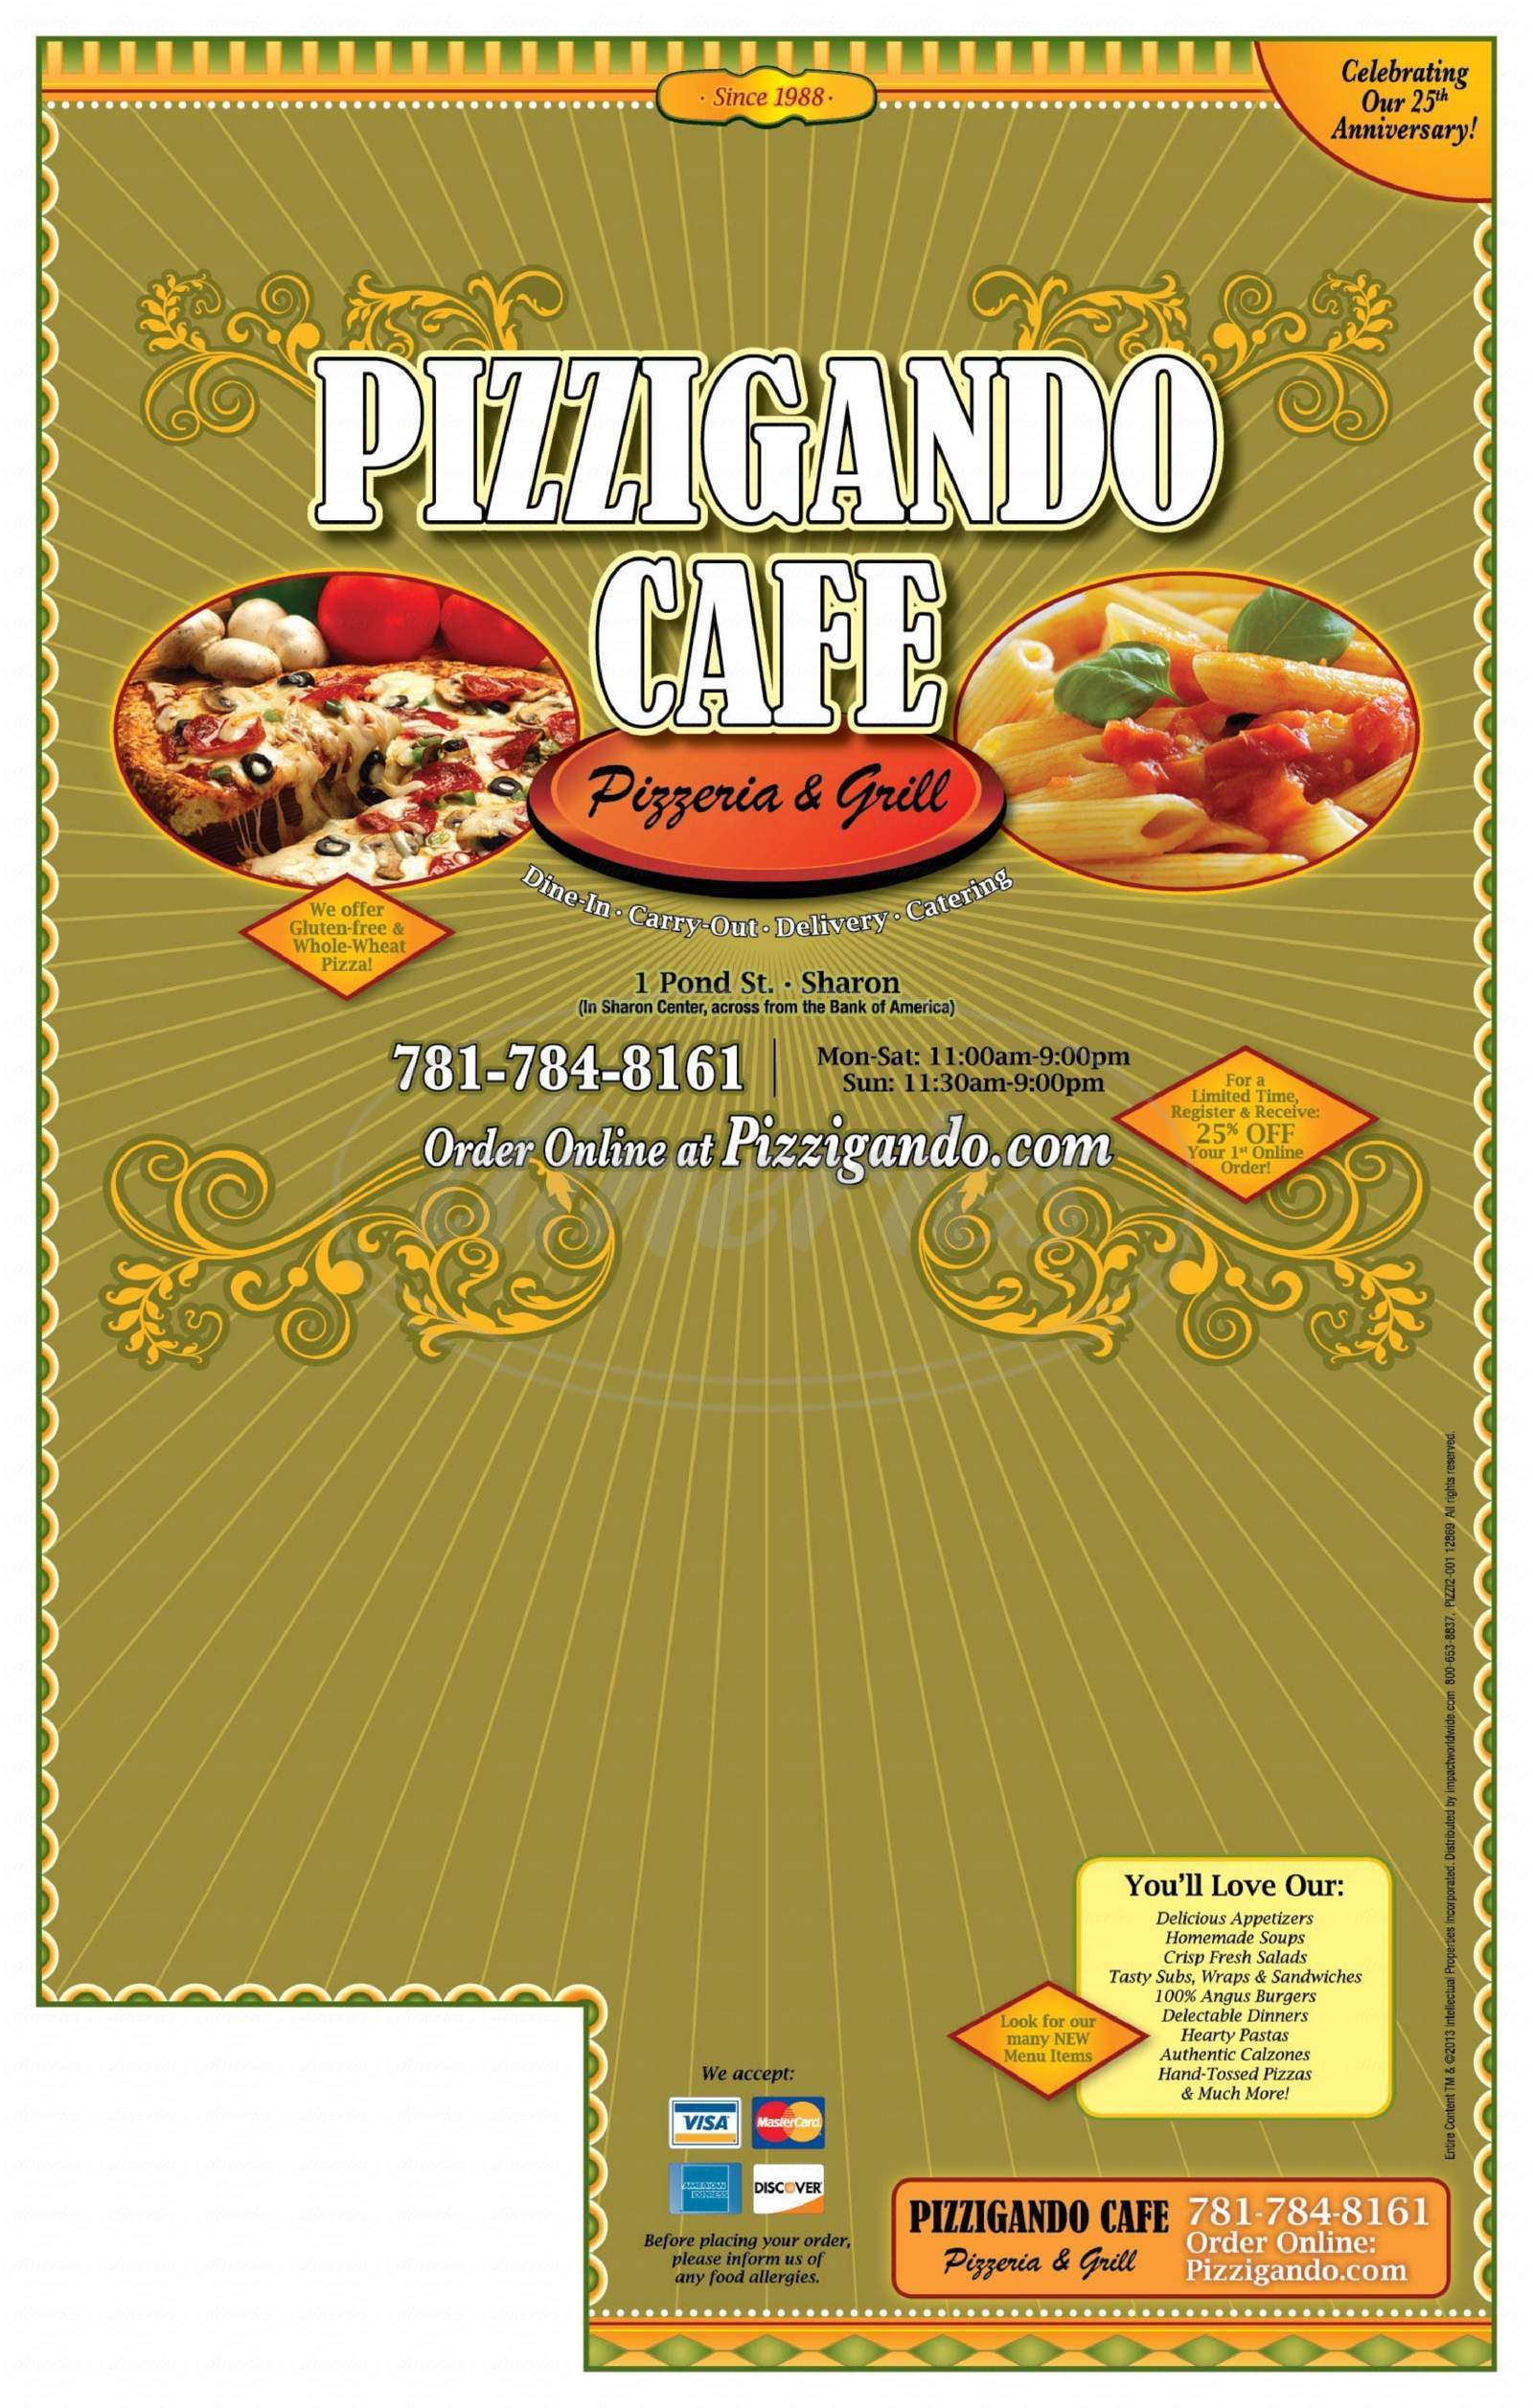 menu for Pizzigando Cafe